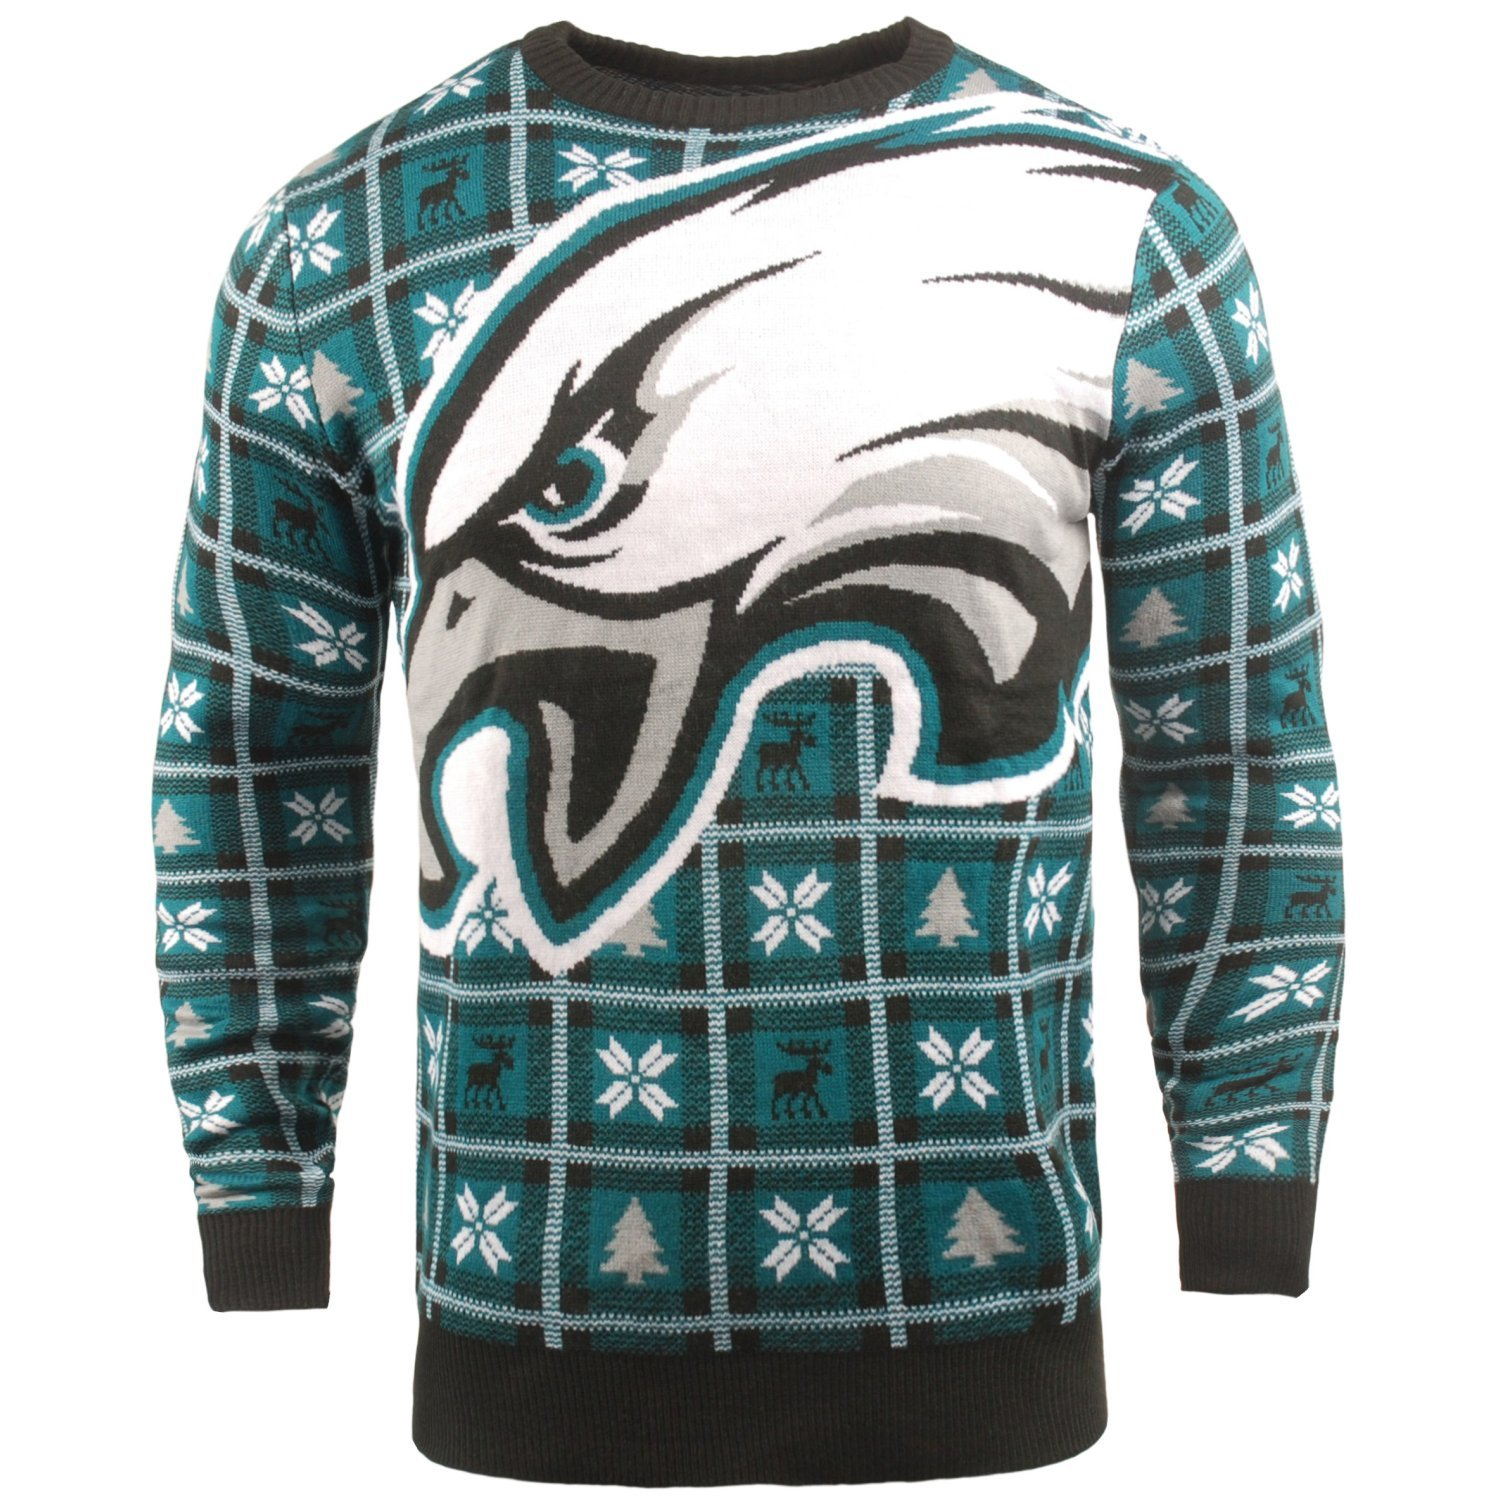 Details About Nfl Ugly Sweater Xmas Knit Pullover Philadelphia Eagles